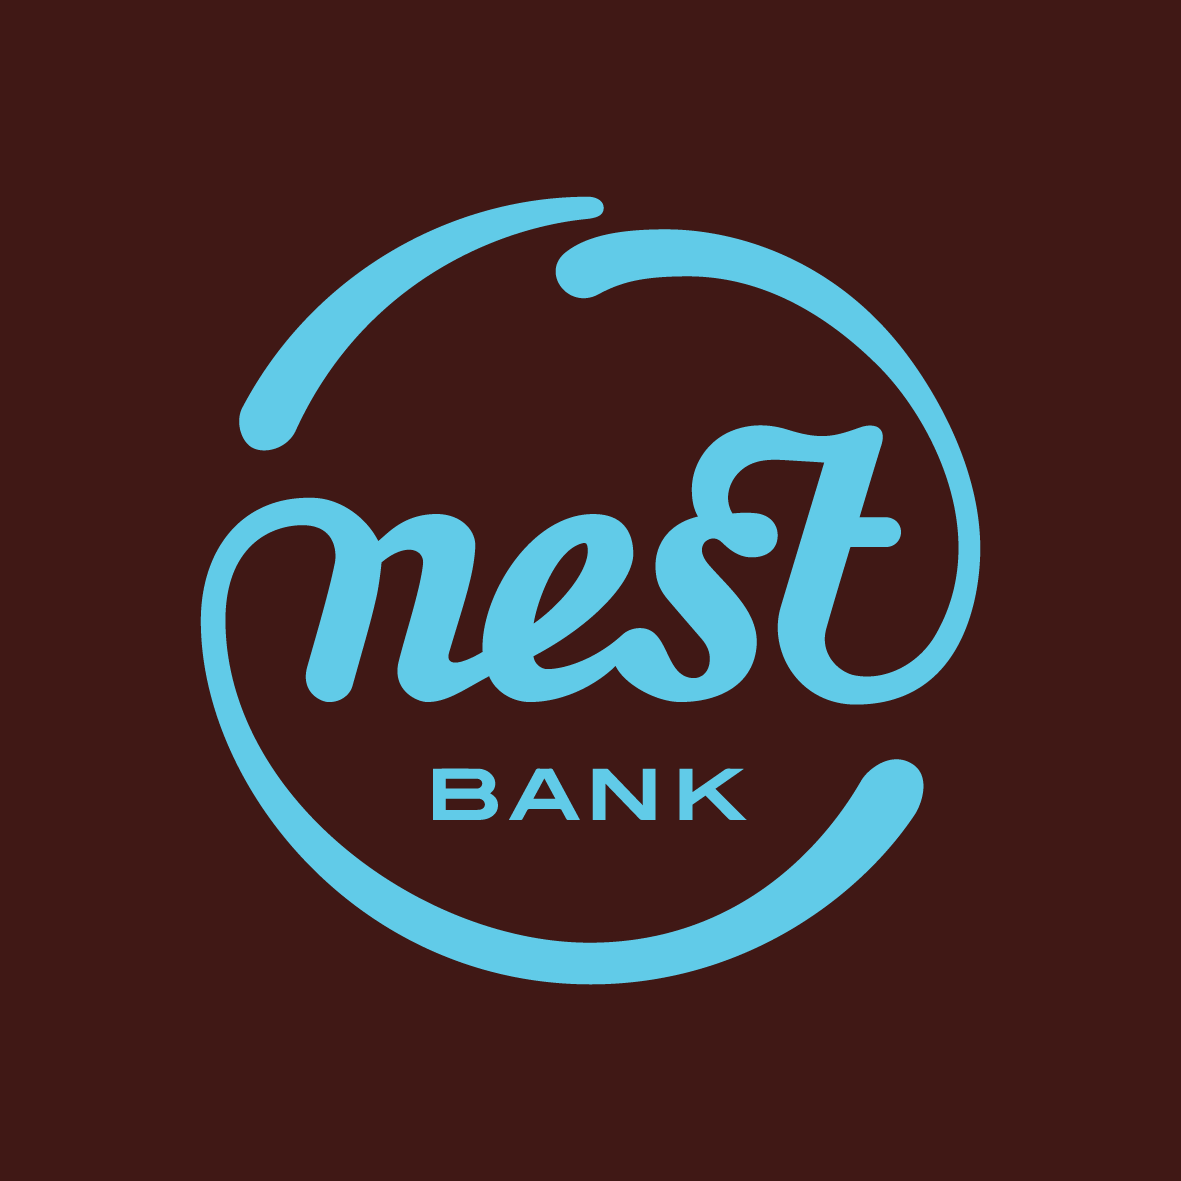 Logotyp Nest Bank